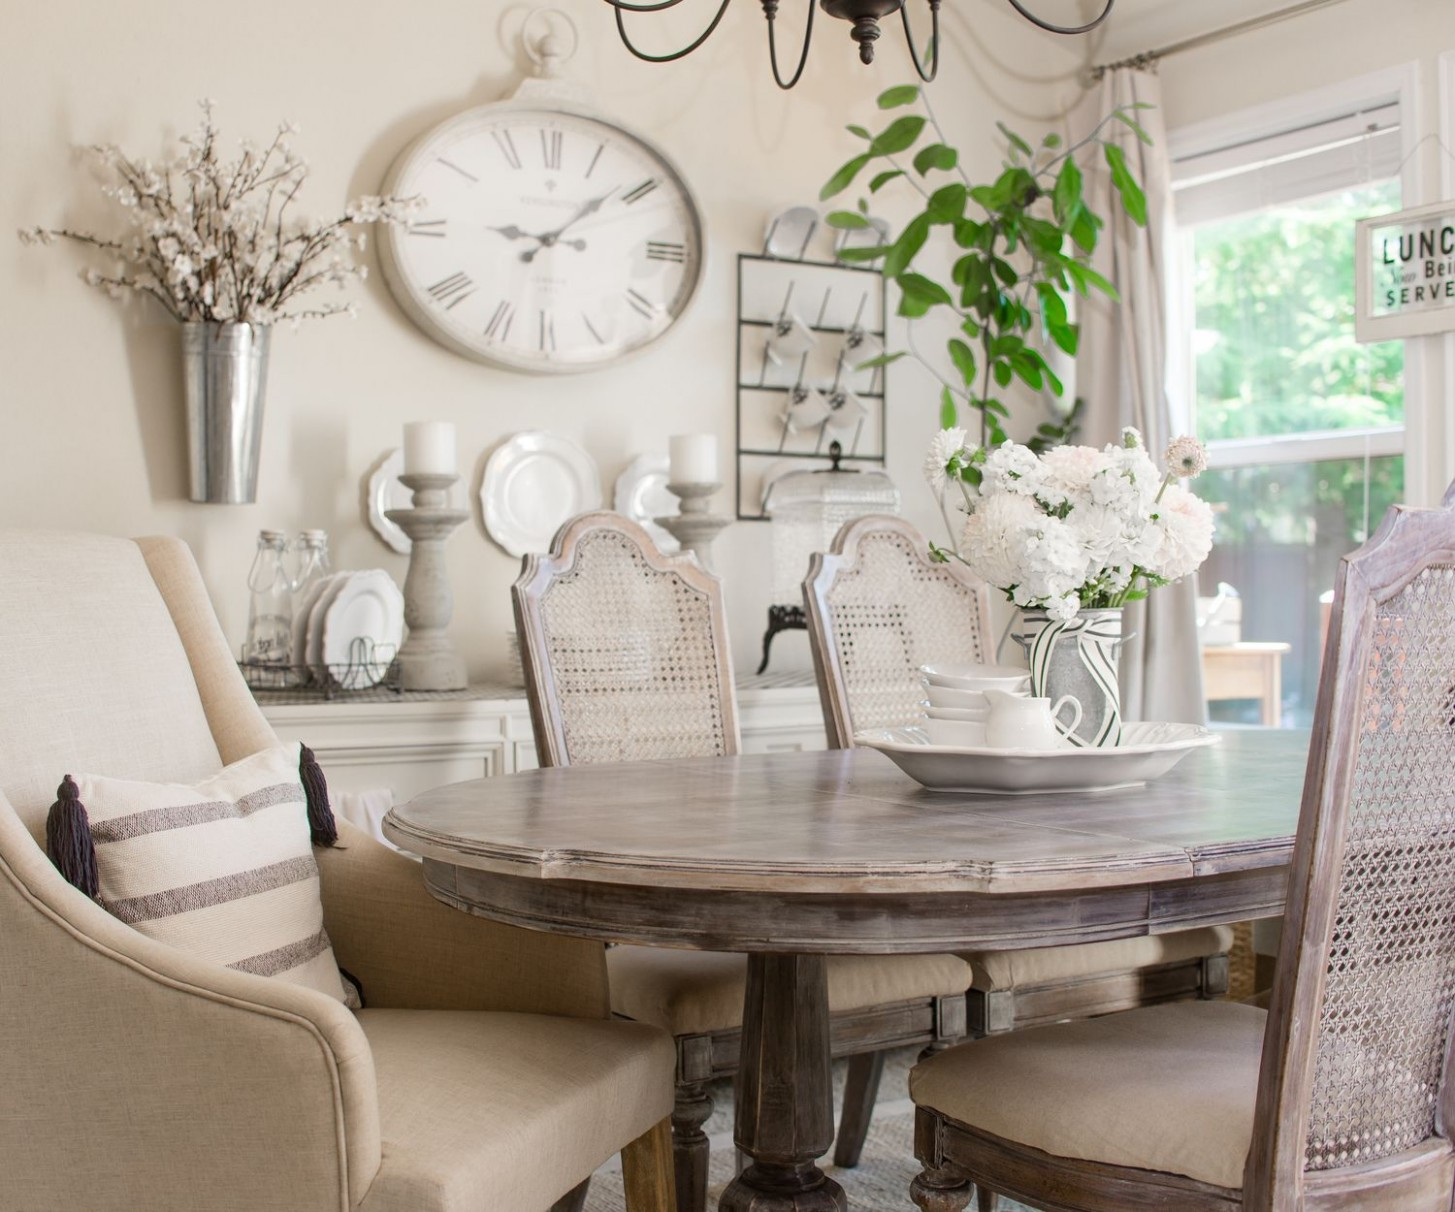 Mixing old and new Decor  French country dining room table  - Dining Room Ideas Country